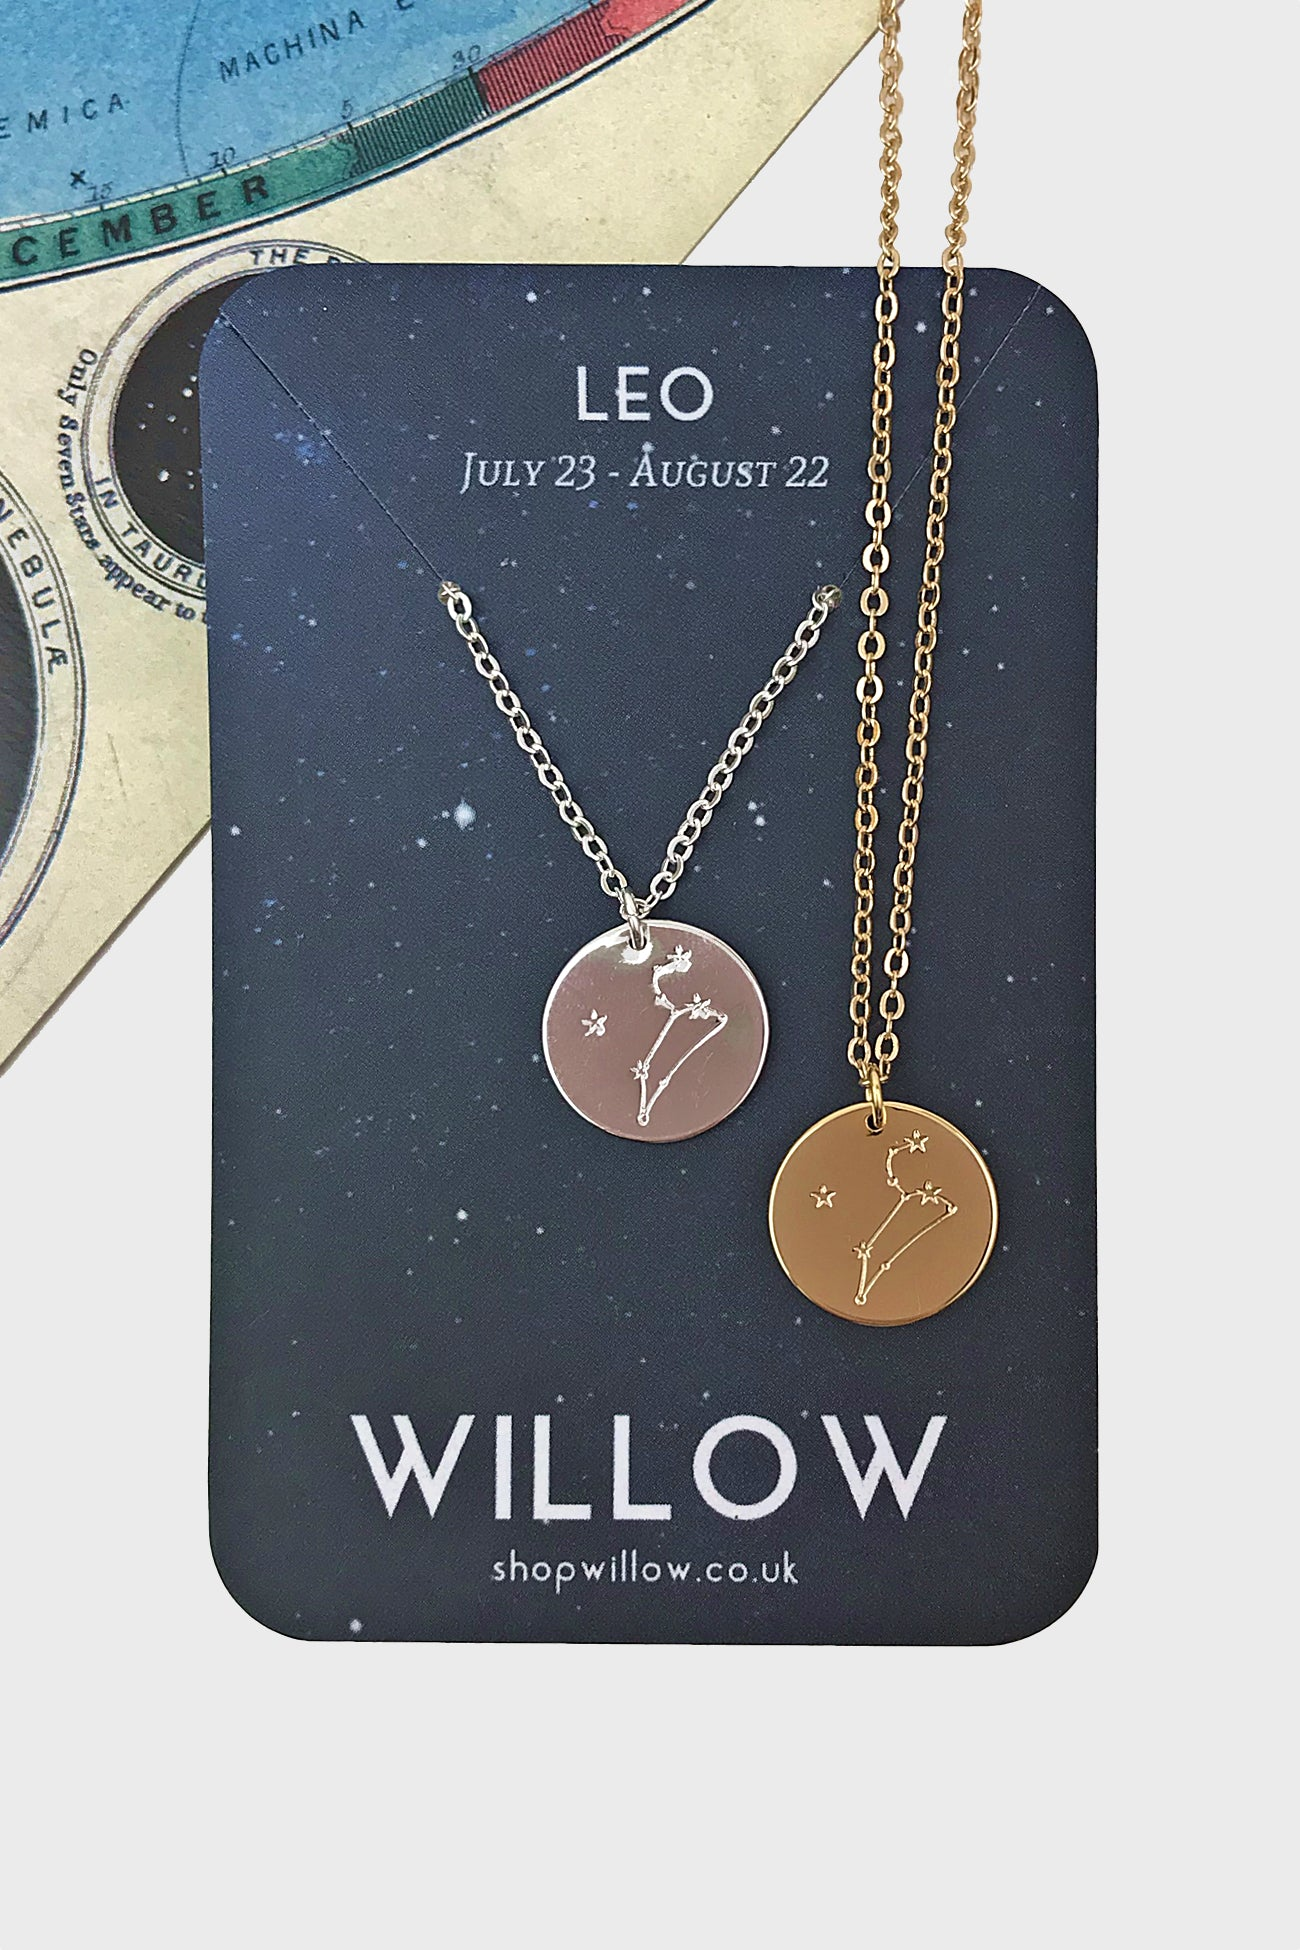 Leo constellation disc necklace